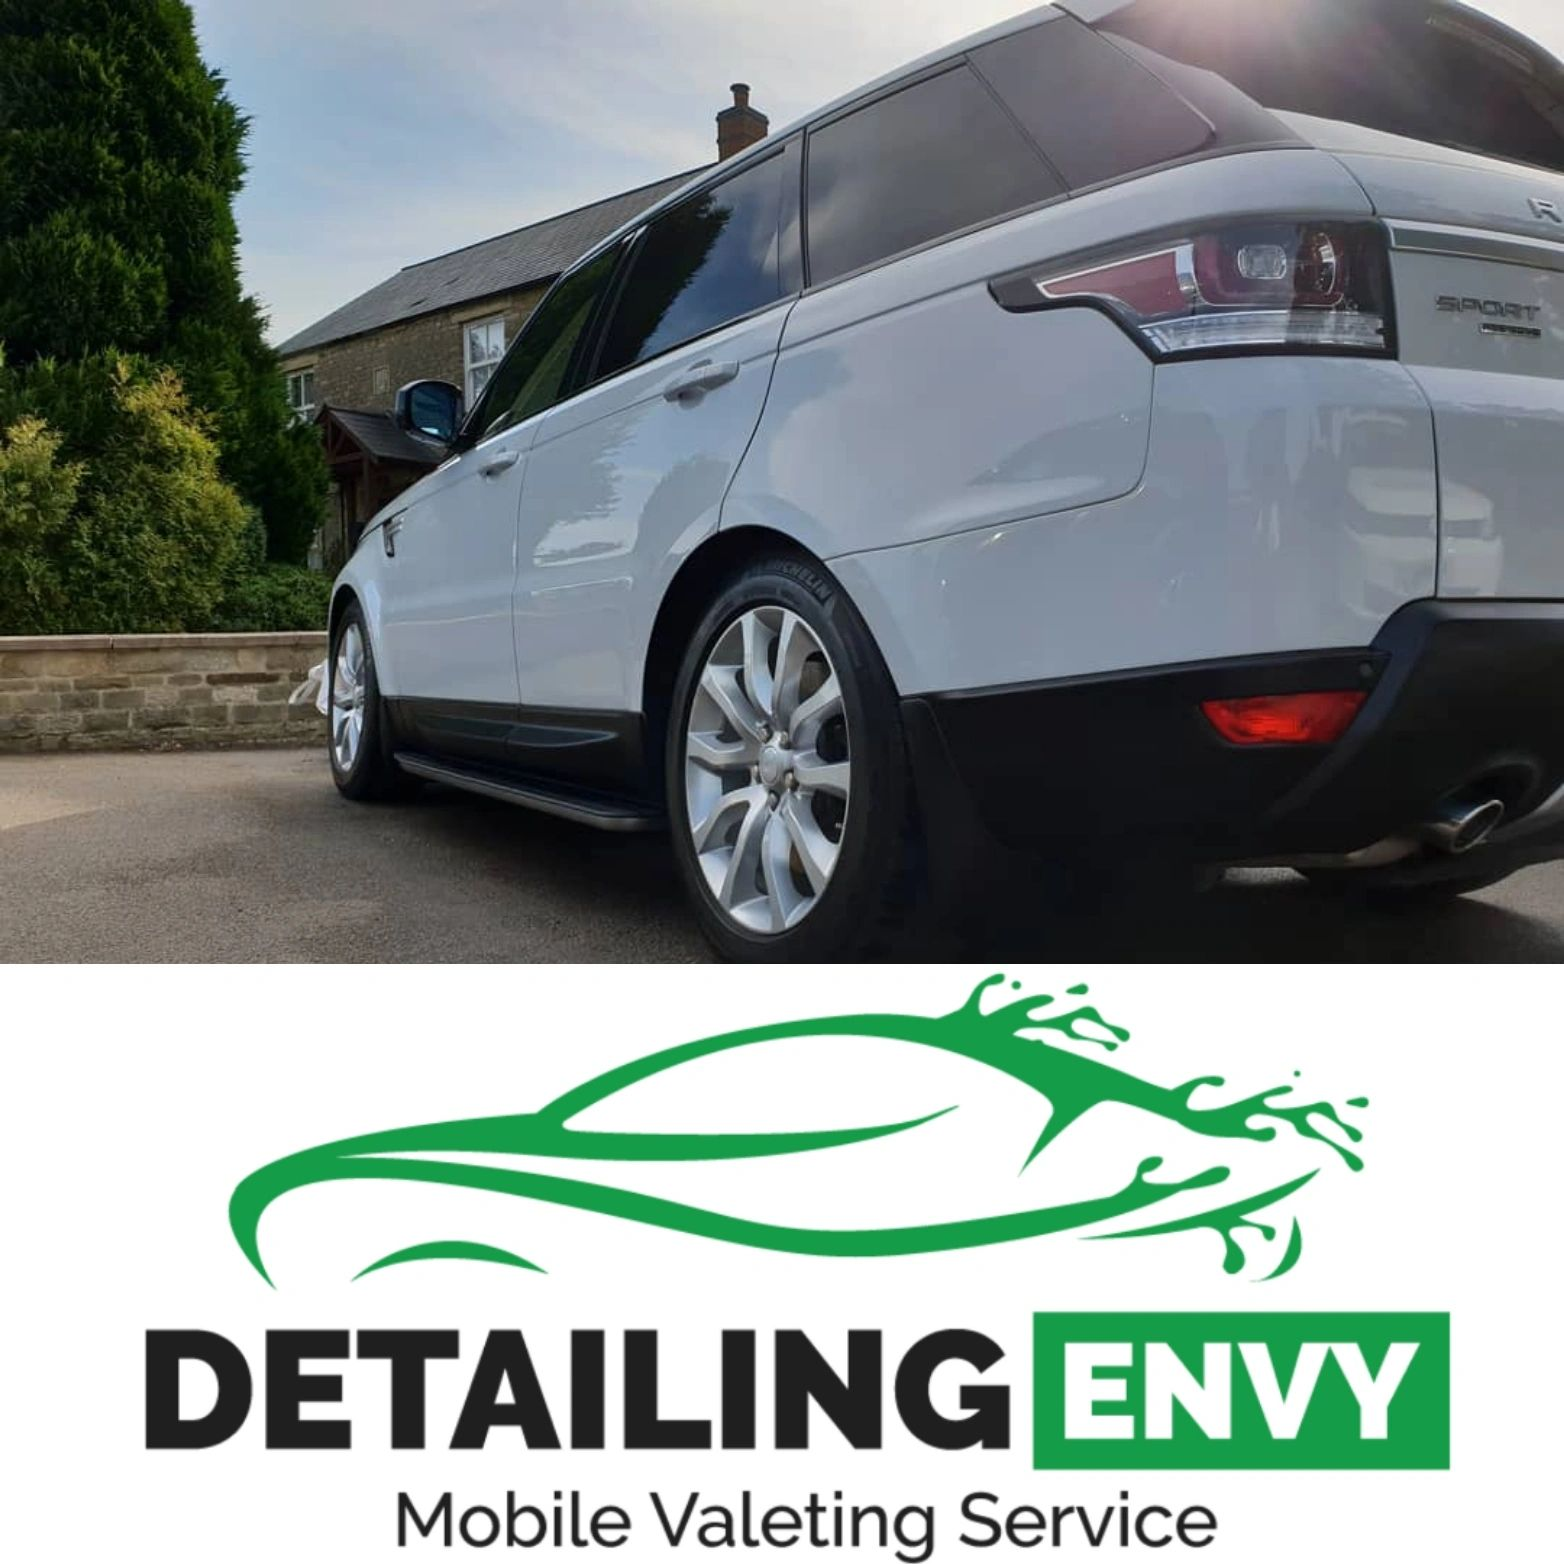 Detailing envy mobile valeting corby Northamptonshire machine polishing new used cars rutland